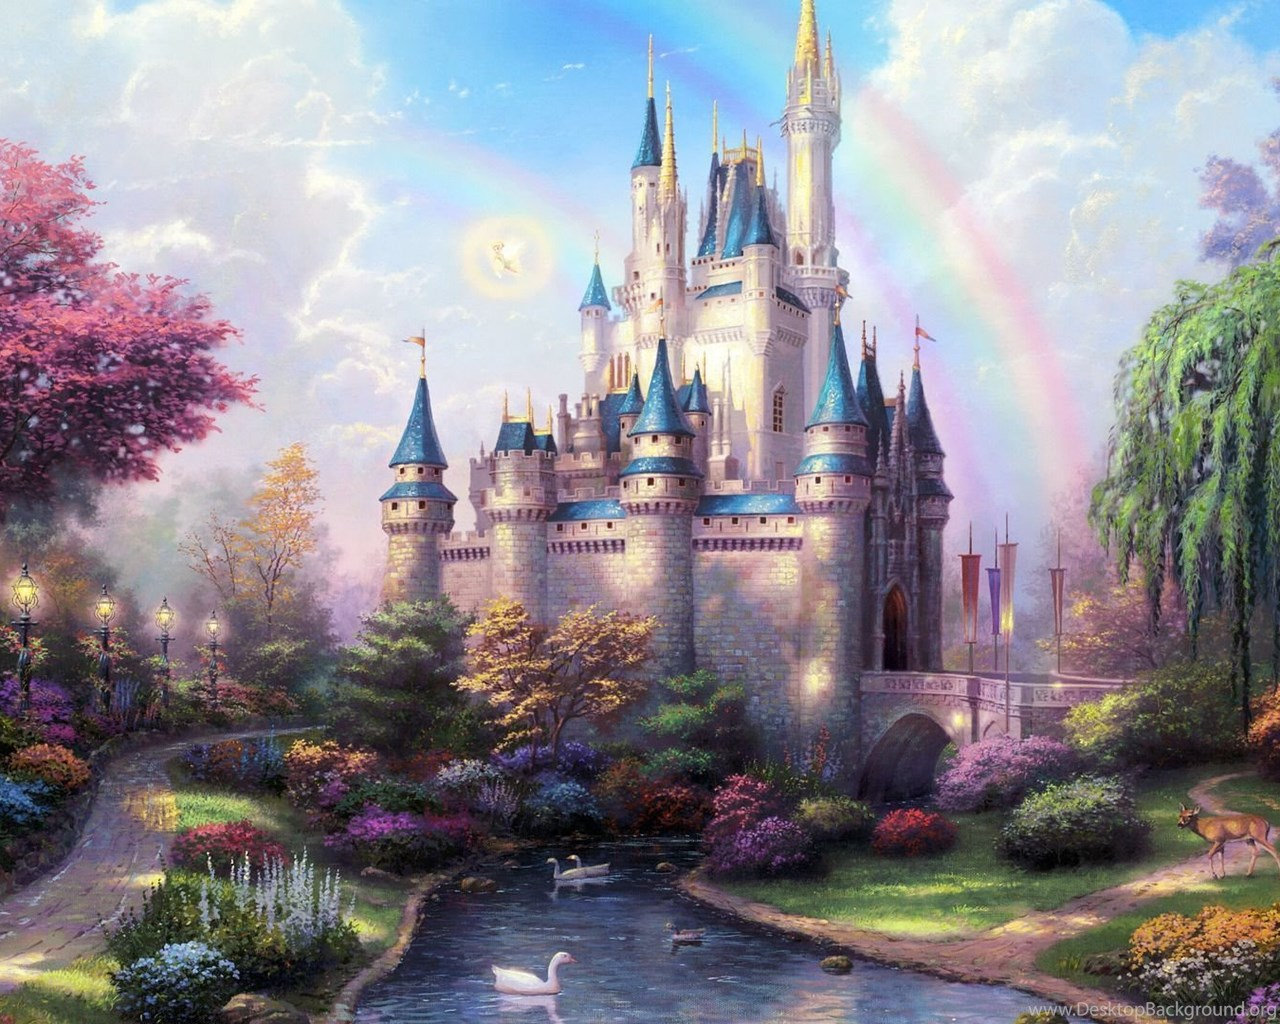 Hd Desktop Wallpapers Free Online Free: 40+ HD Castle Wallpapers 1920x1080 For Free Download